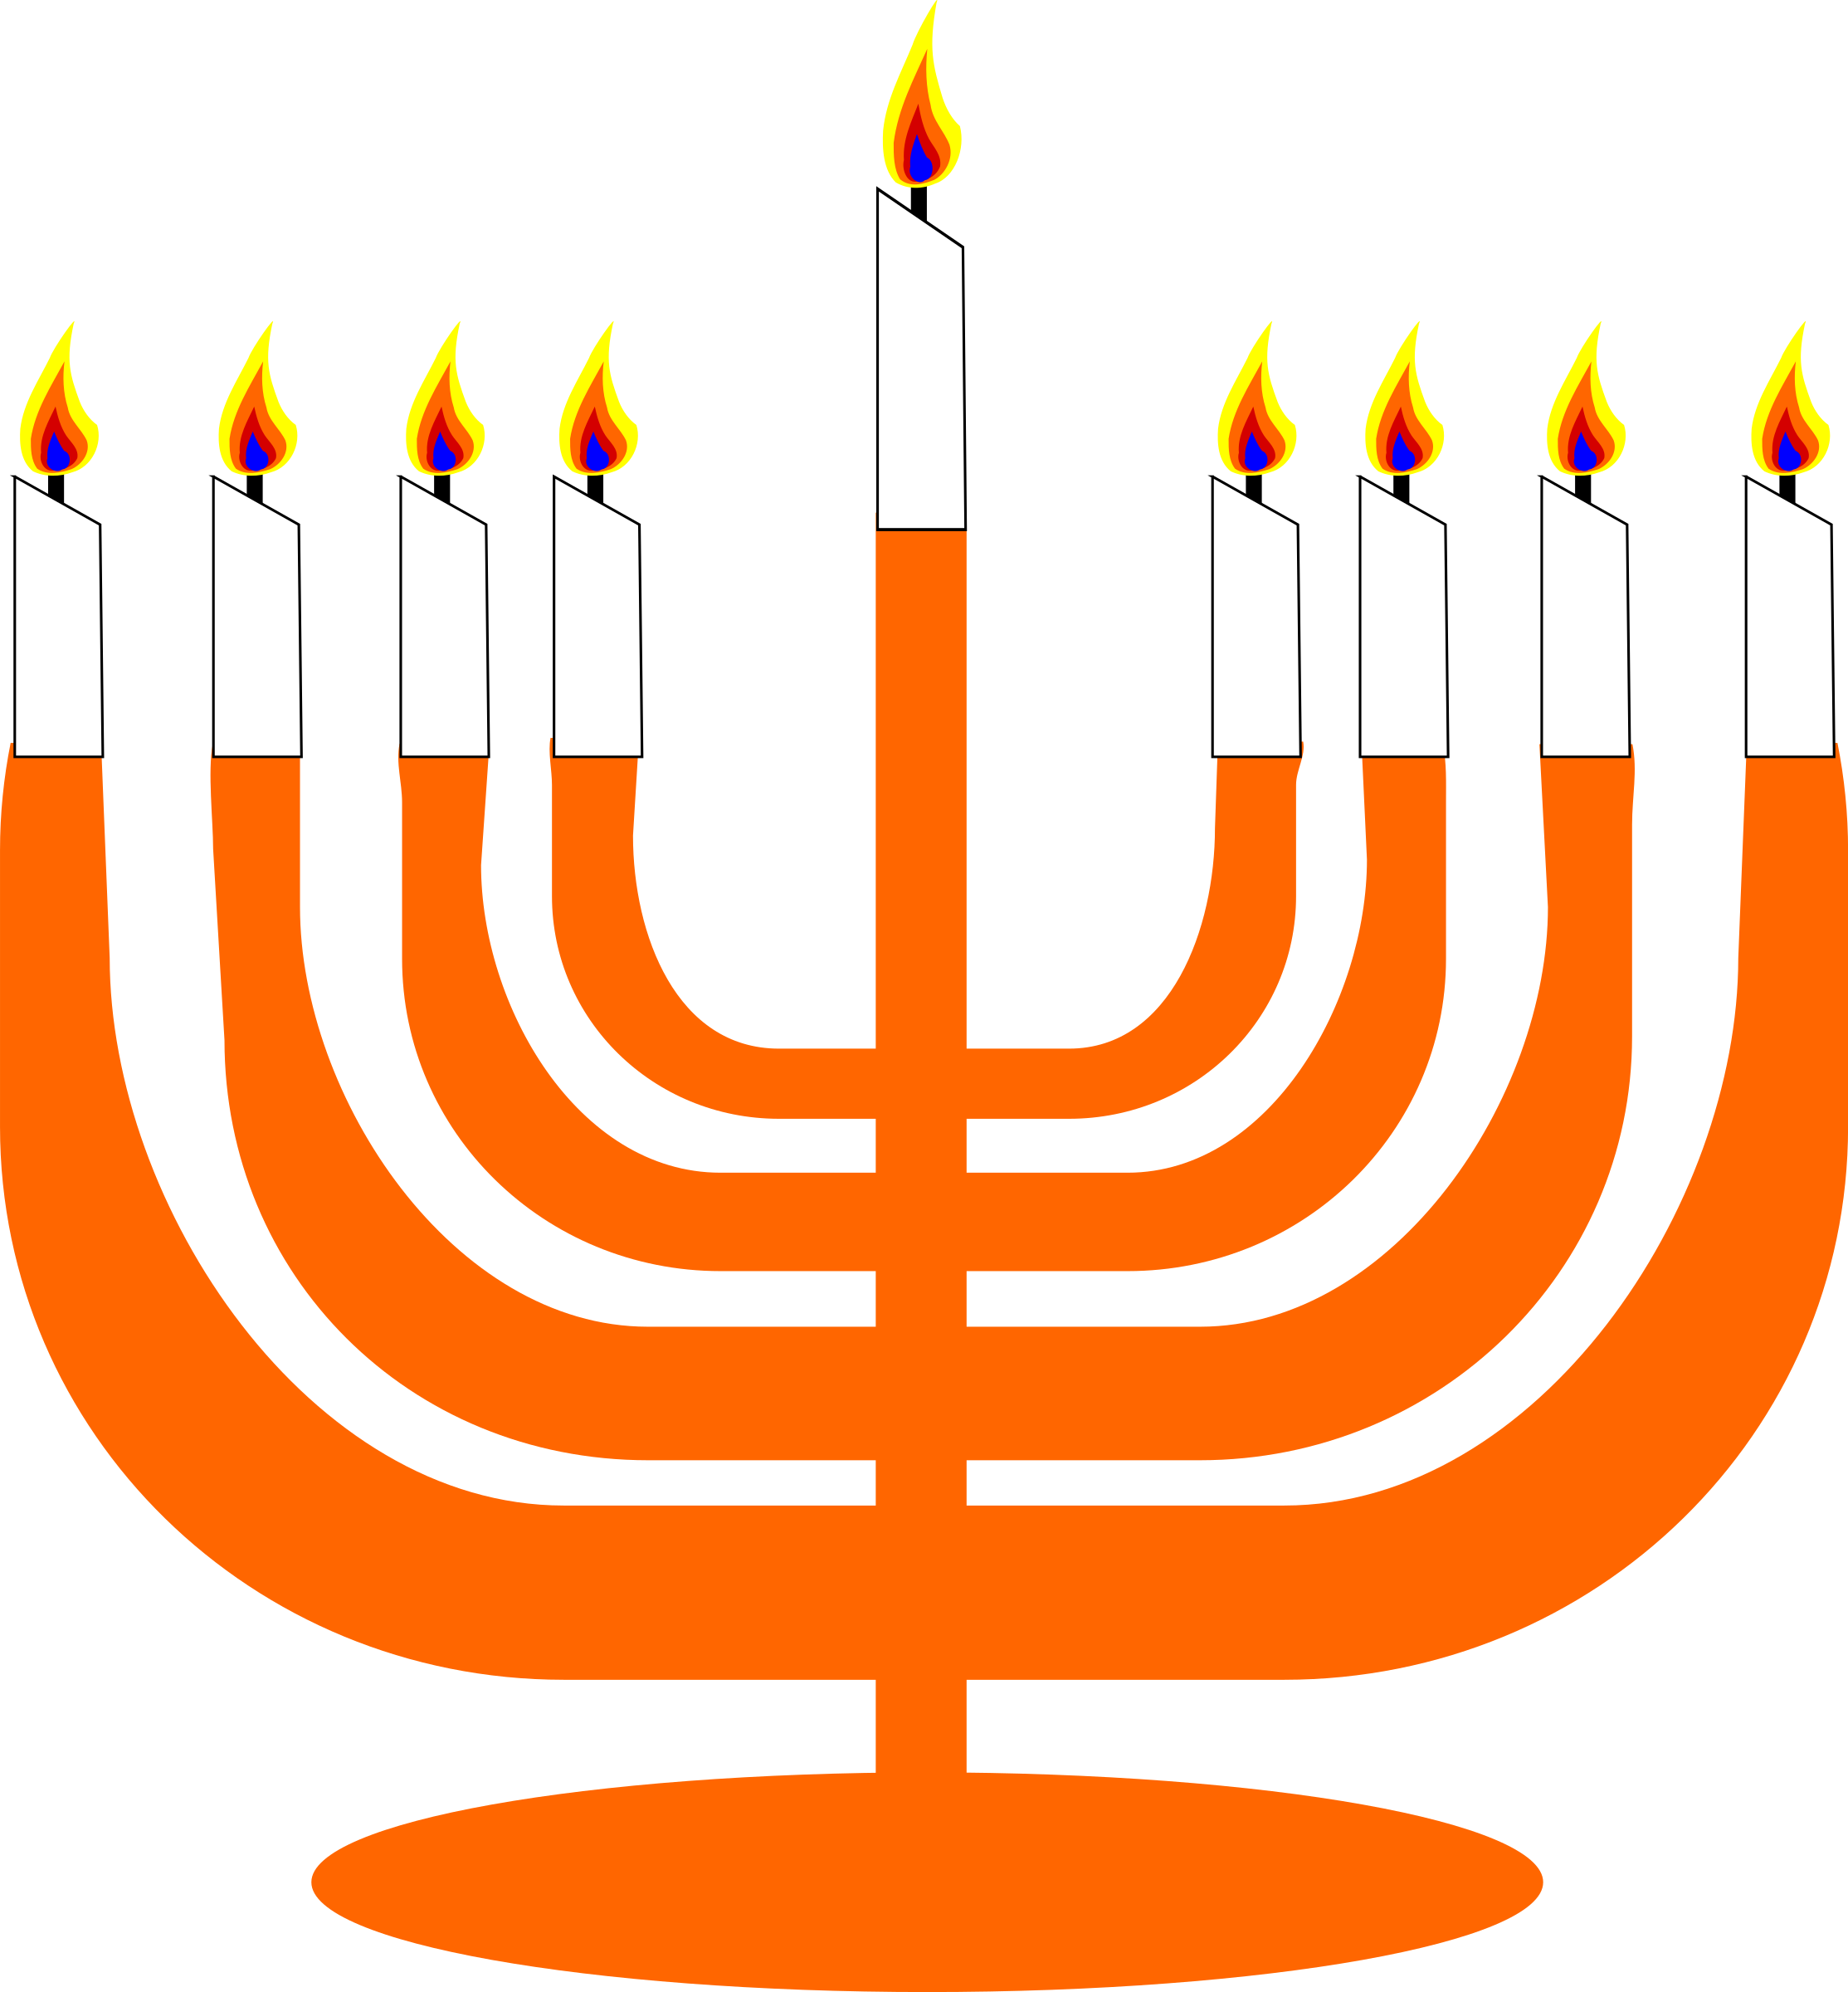 graphic freeuse download Simple menorah for with. Hanukkah clipart